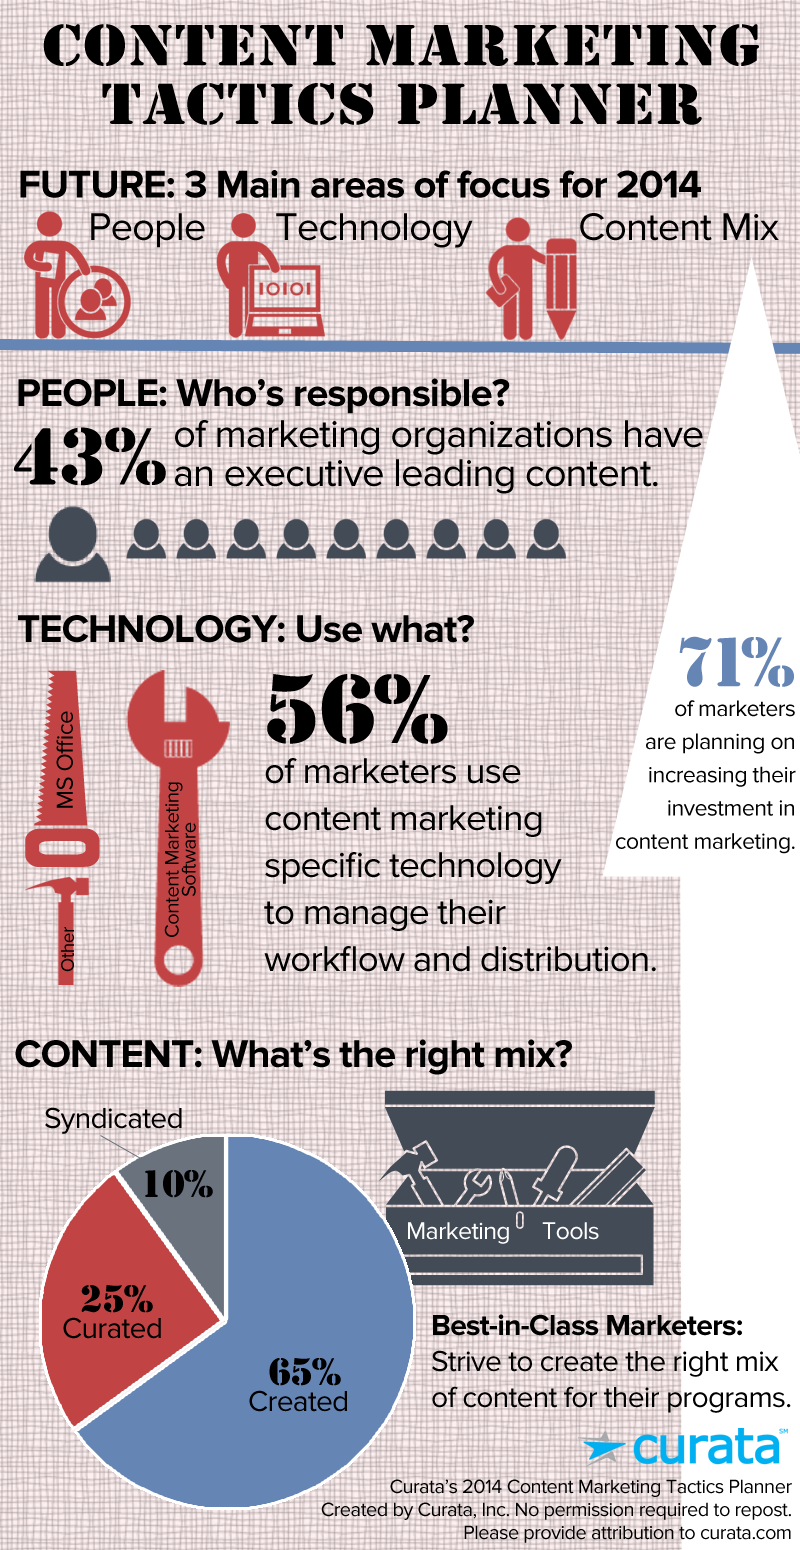 contentmarketingtactics_infographic_tools